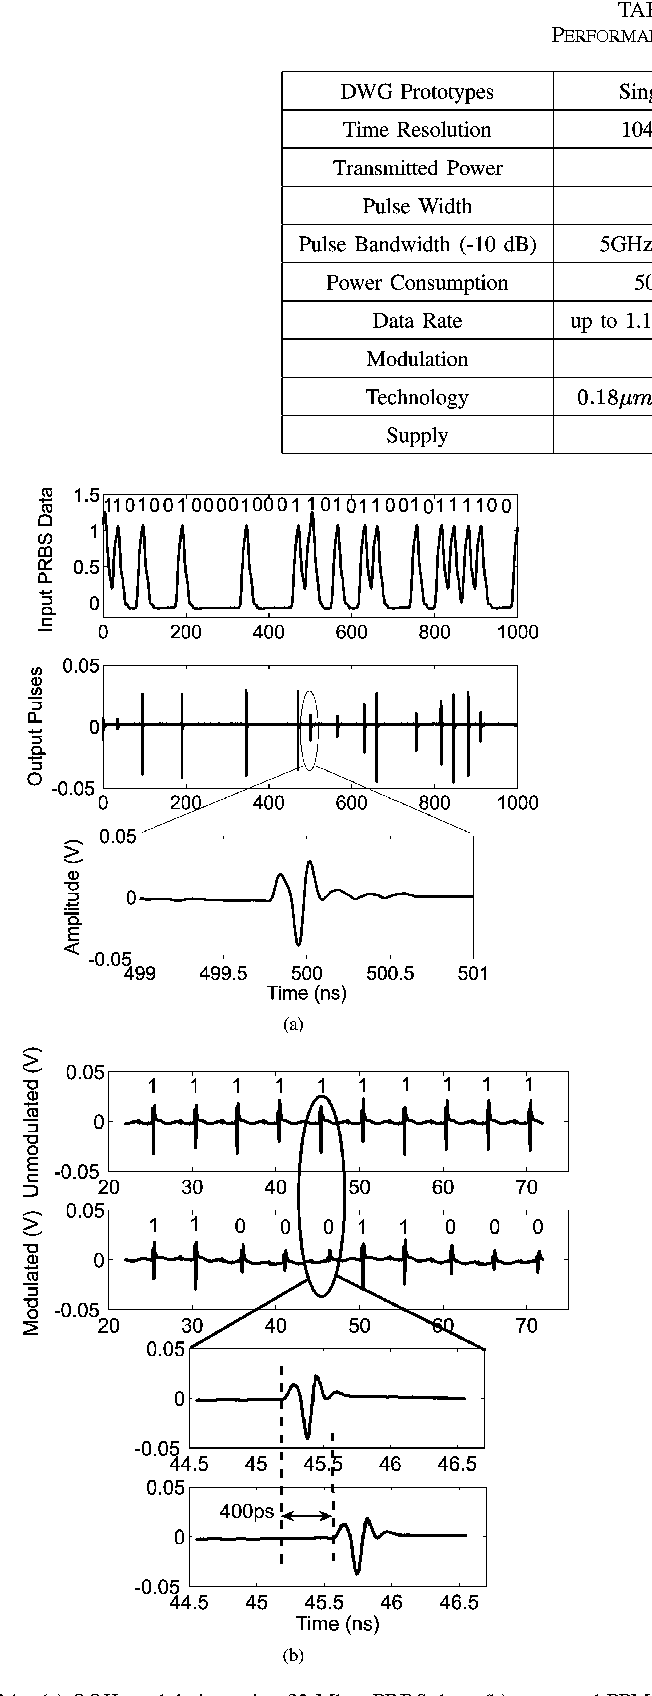 Distributed Waveform Generator A New Circuit Technique For Ultra Impulse Modulated Infrared Transmitter Wideband Pulse Generation Shaping And Modulation Semantic Scholar